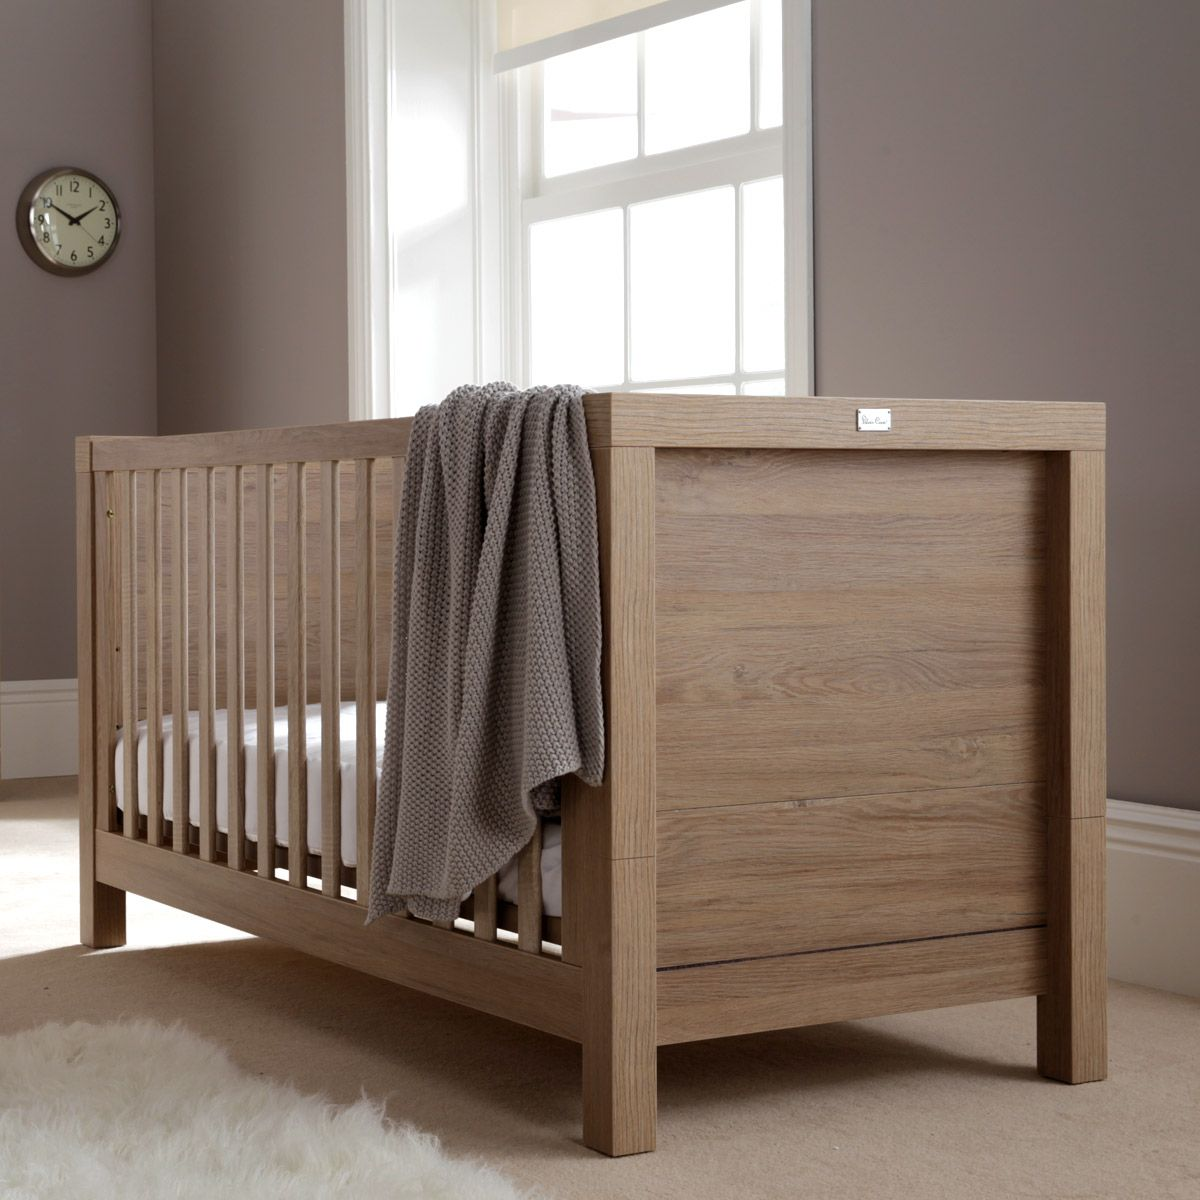 The Statement Portobello Cot Bed From Silver Cross This Stylish Has 3 Base Positions And Then Transforms Into A Lovely Toddler